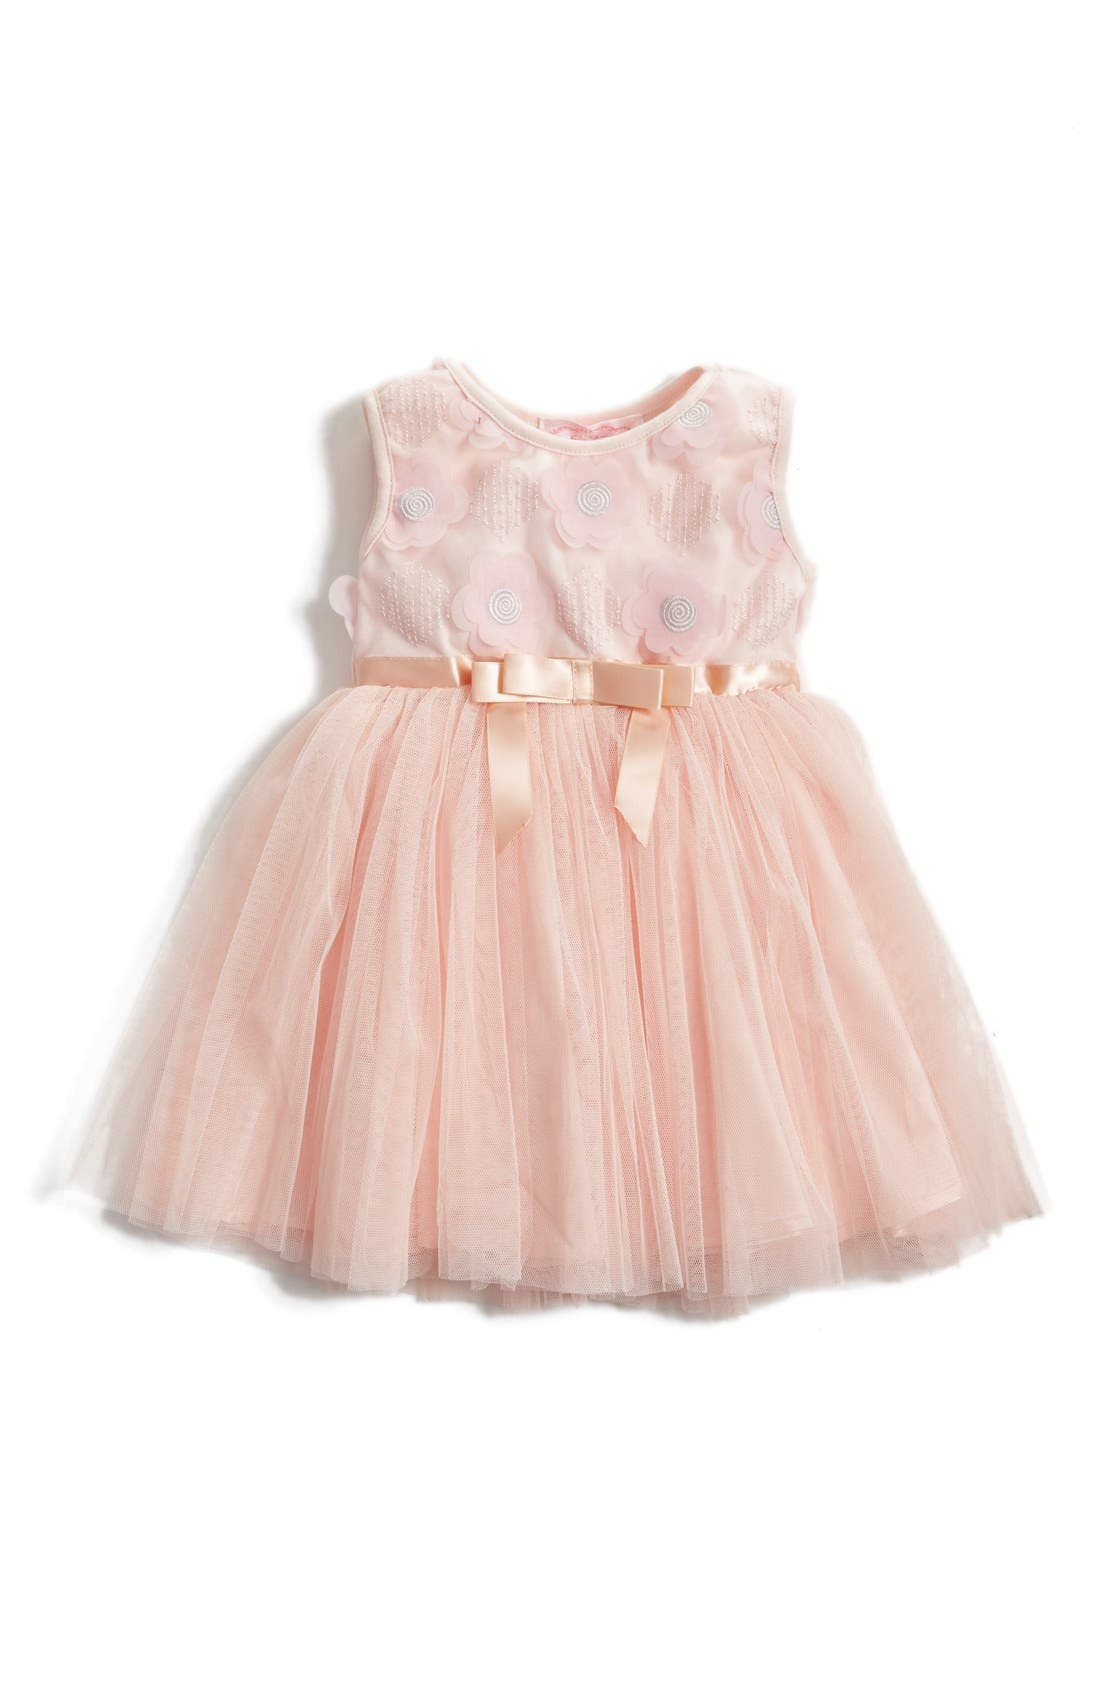 Main Image - Popatu Floral Appliqué Tulle Dress (Baby Girls)